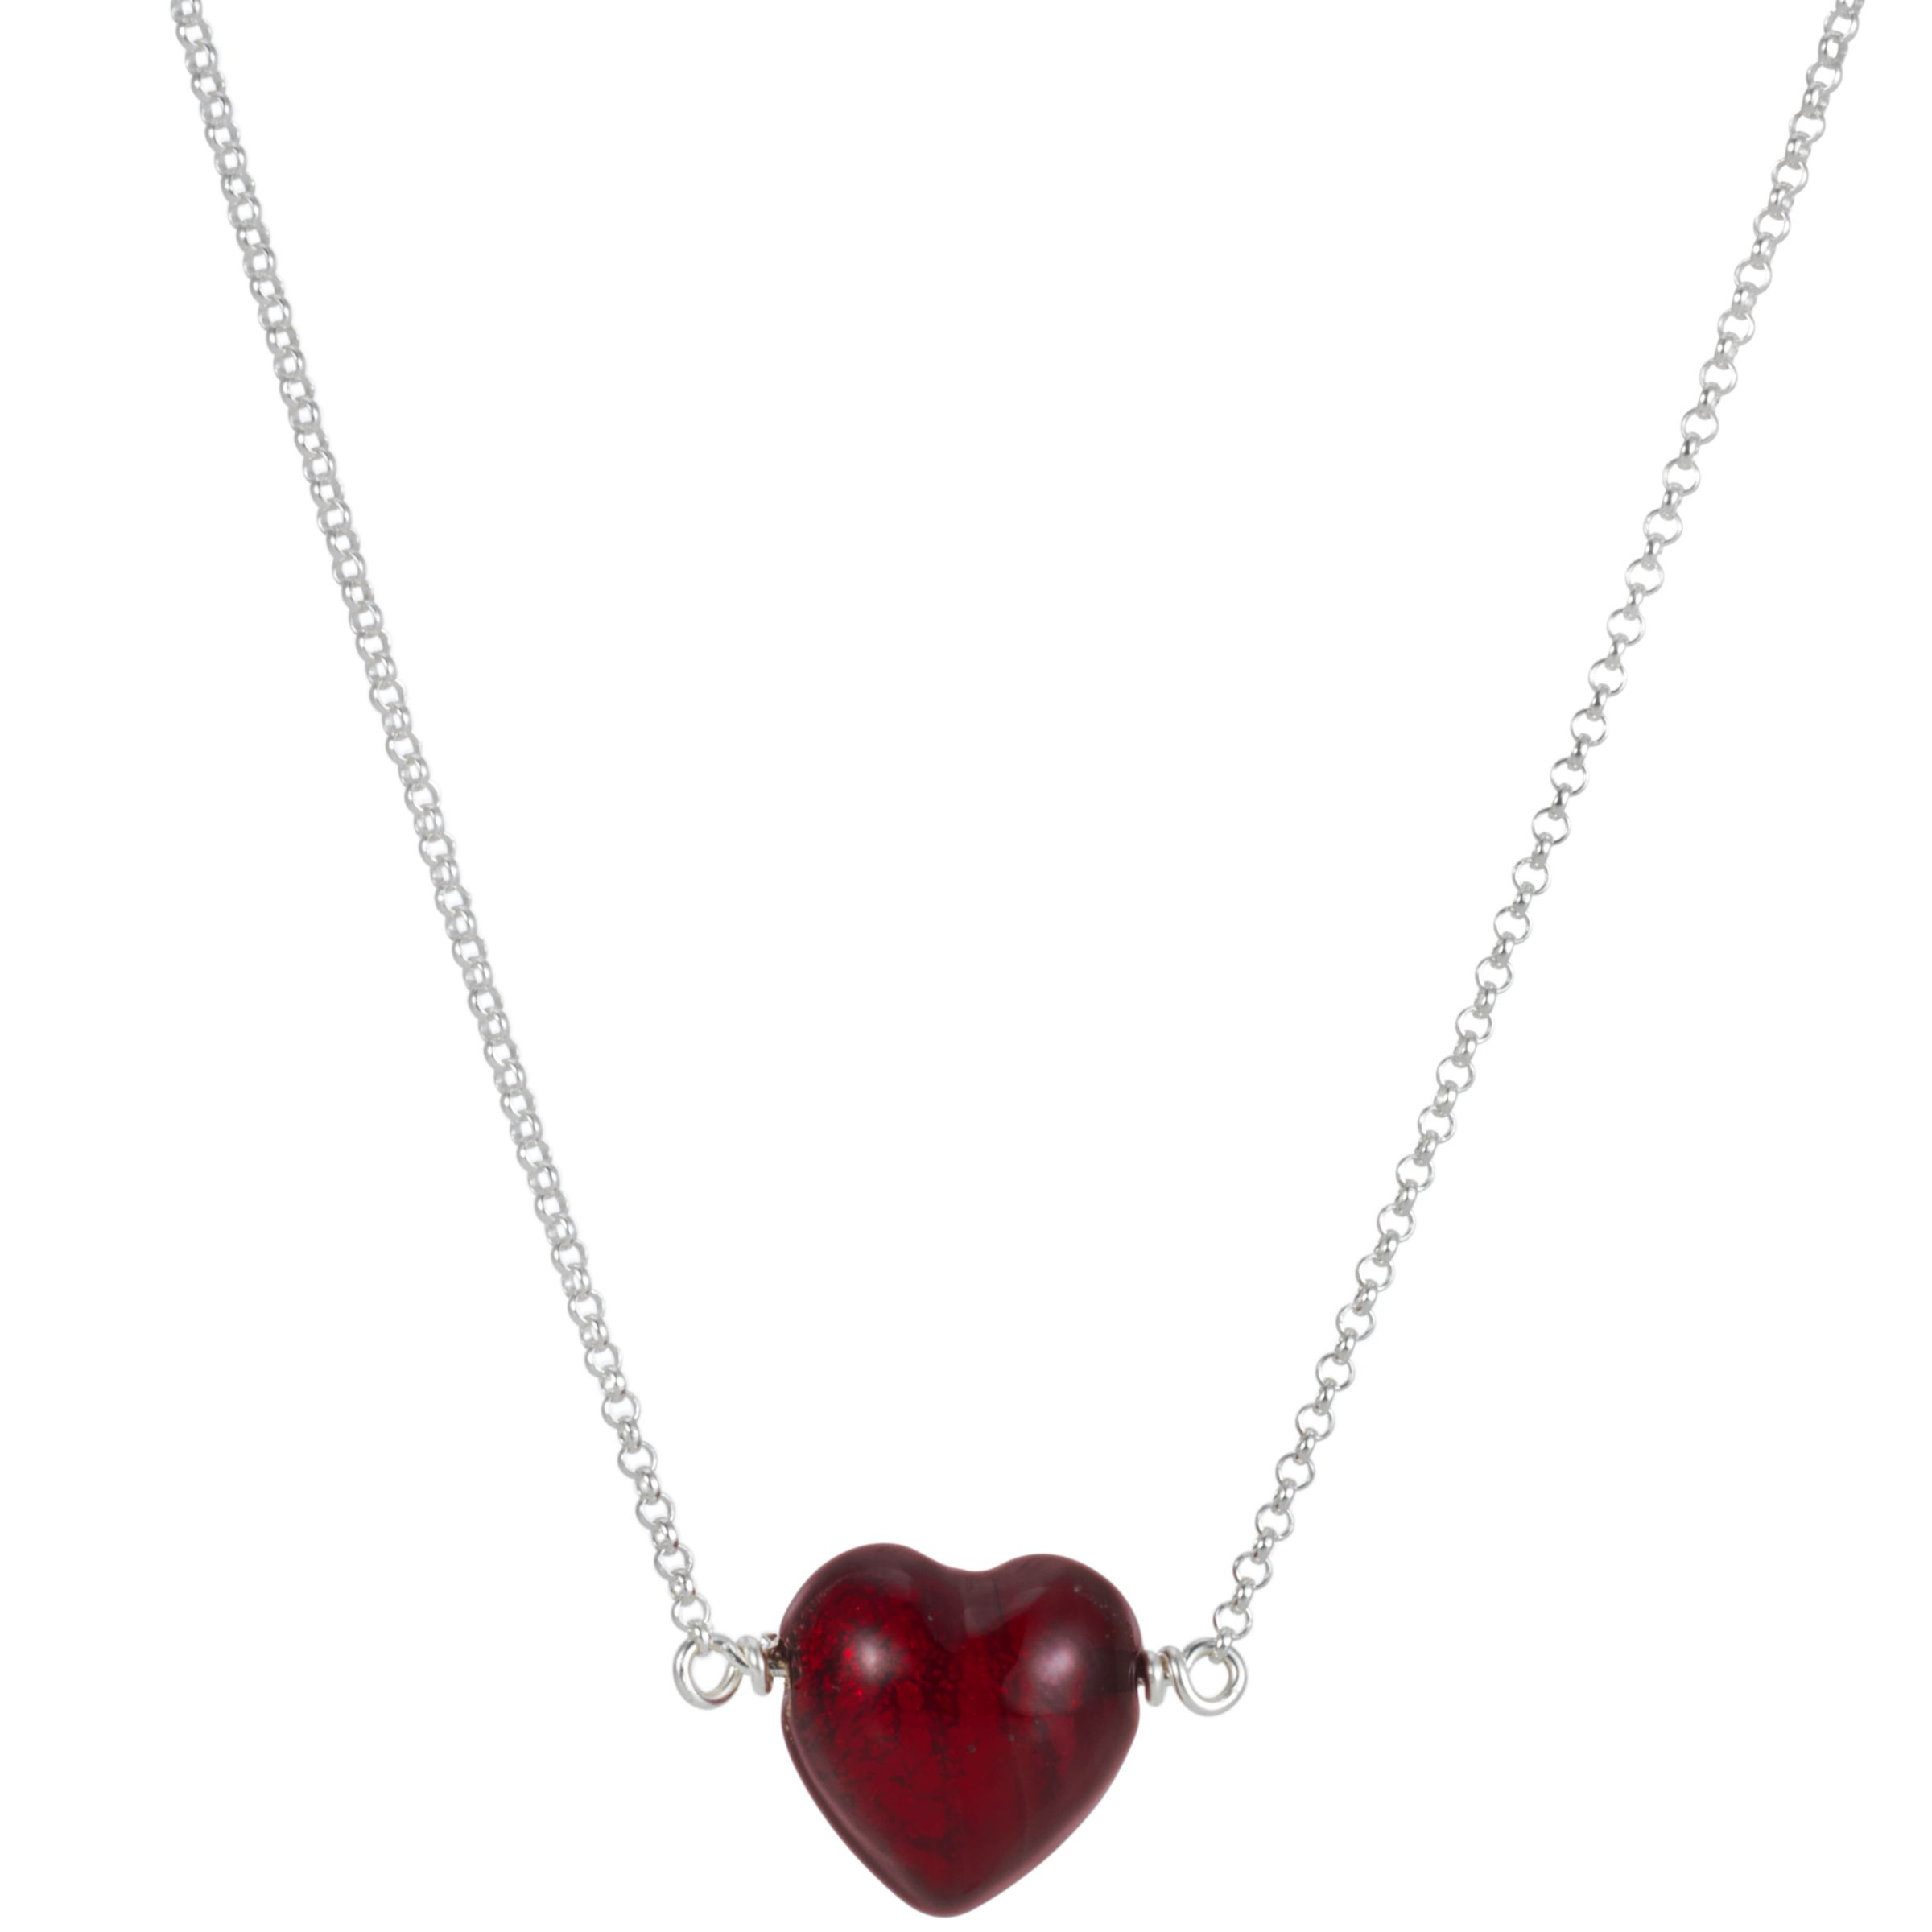 Martick Cranberry Thread Through Heart Pendant Necklace